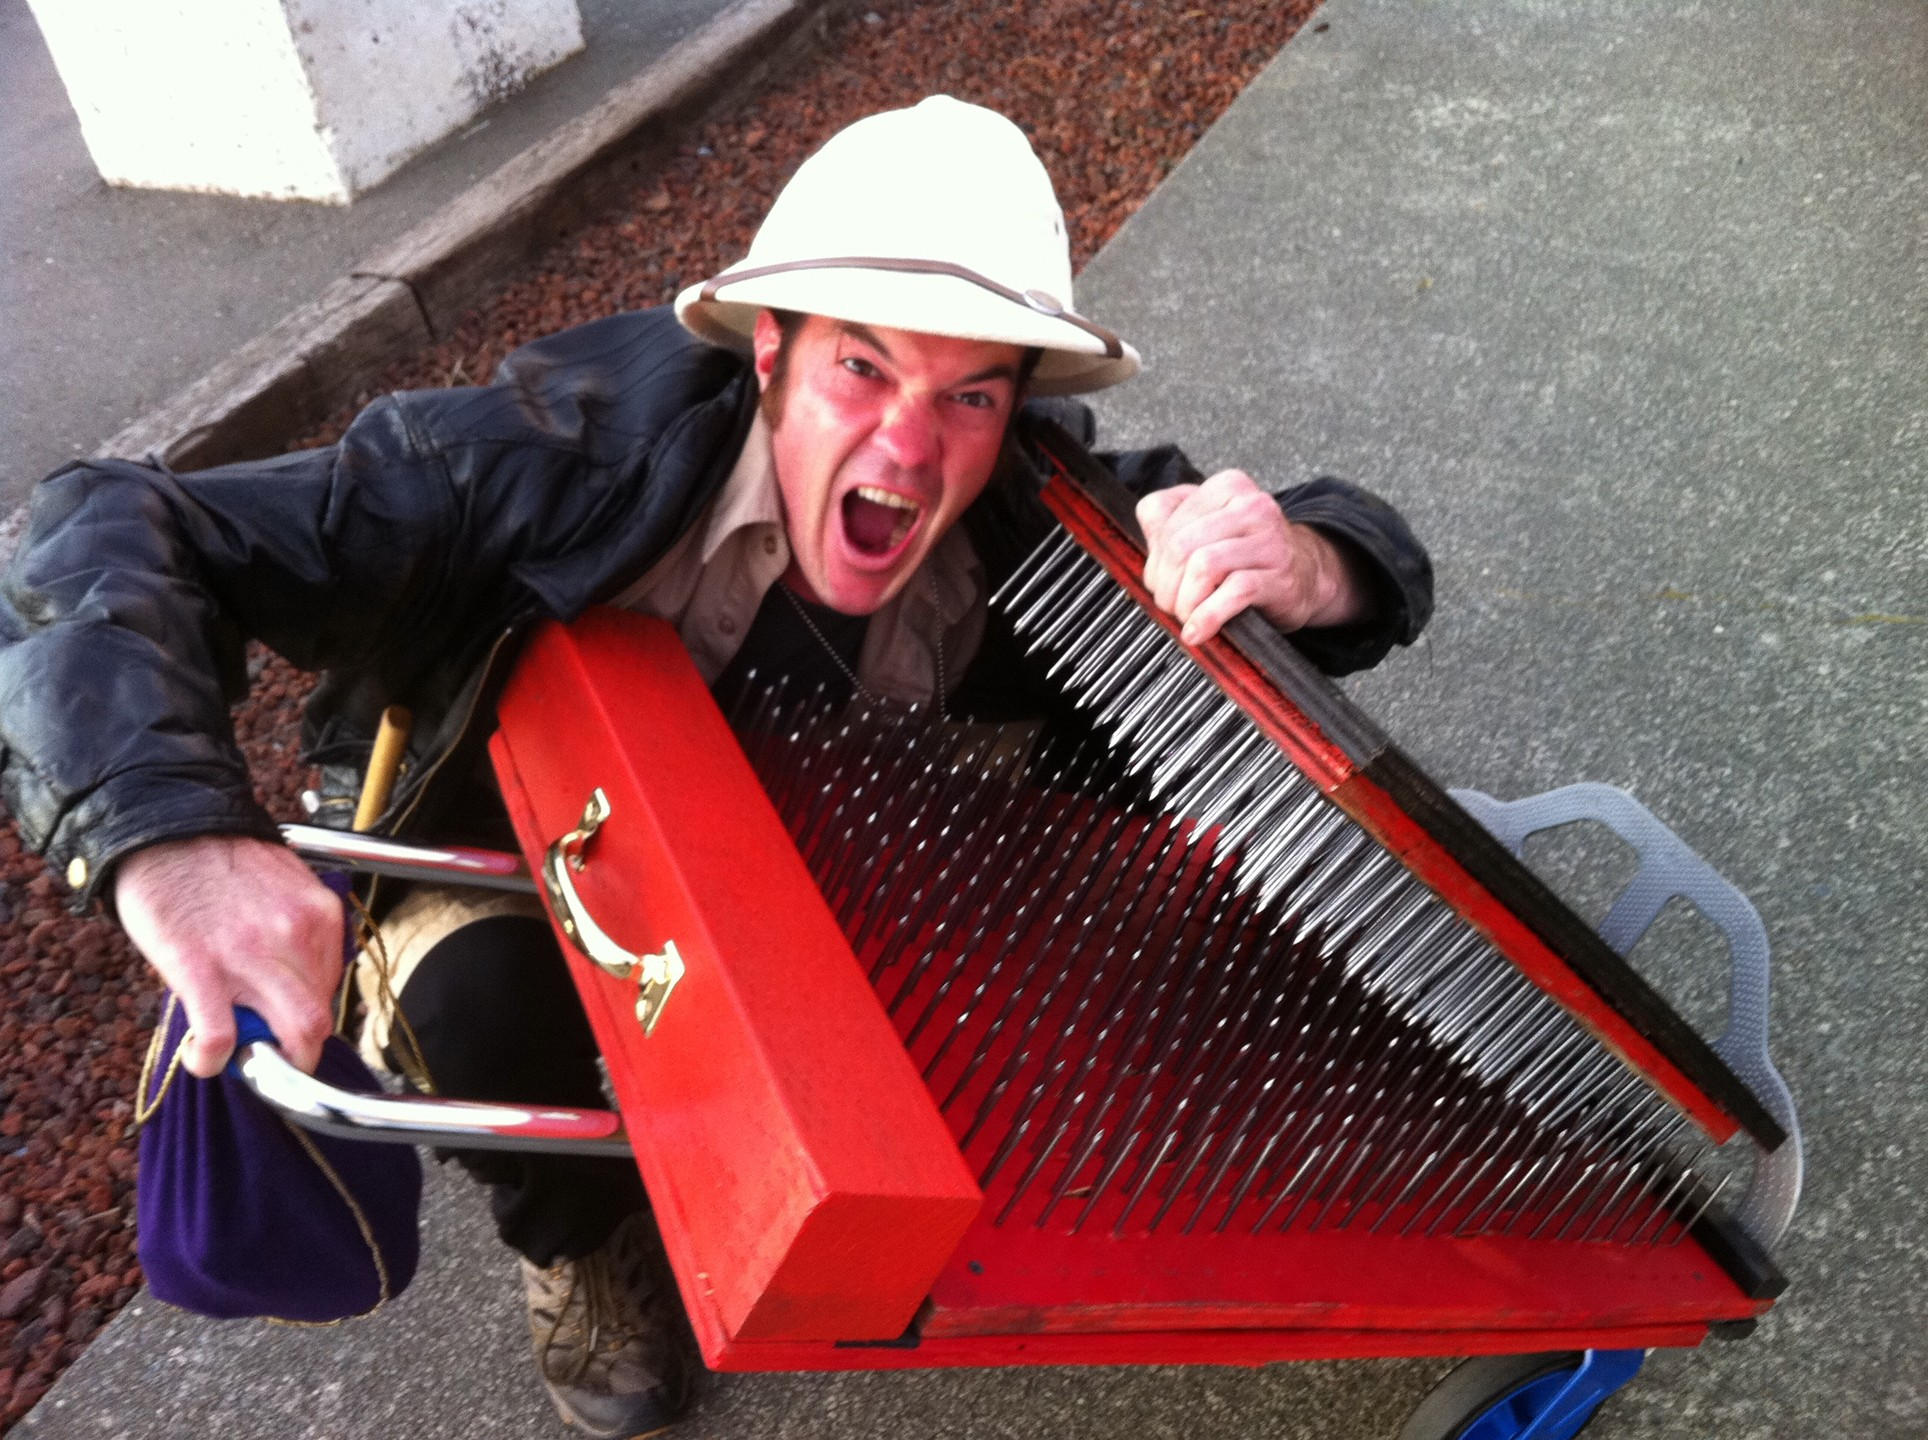 Shea FreeLove with his bed of nails - PHOTO BY BOB DORAN